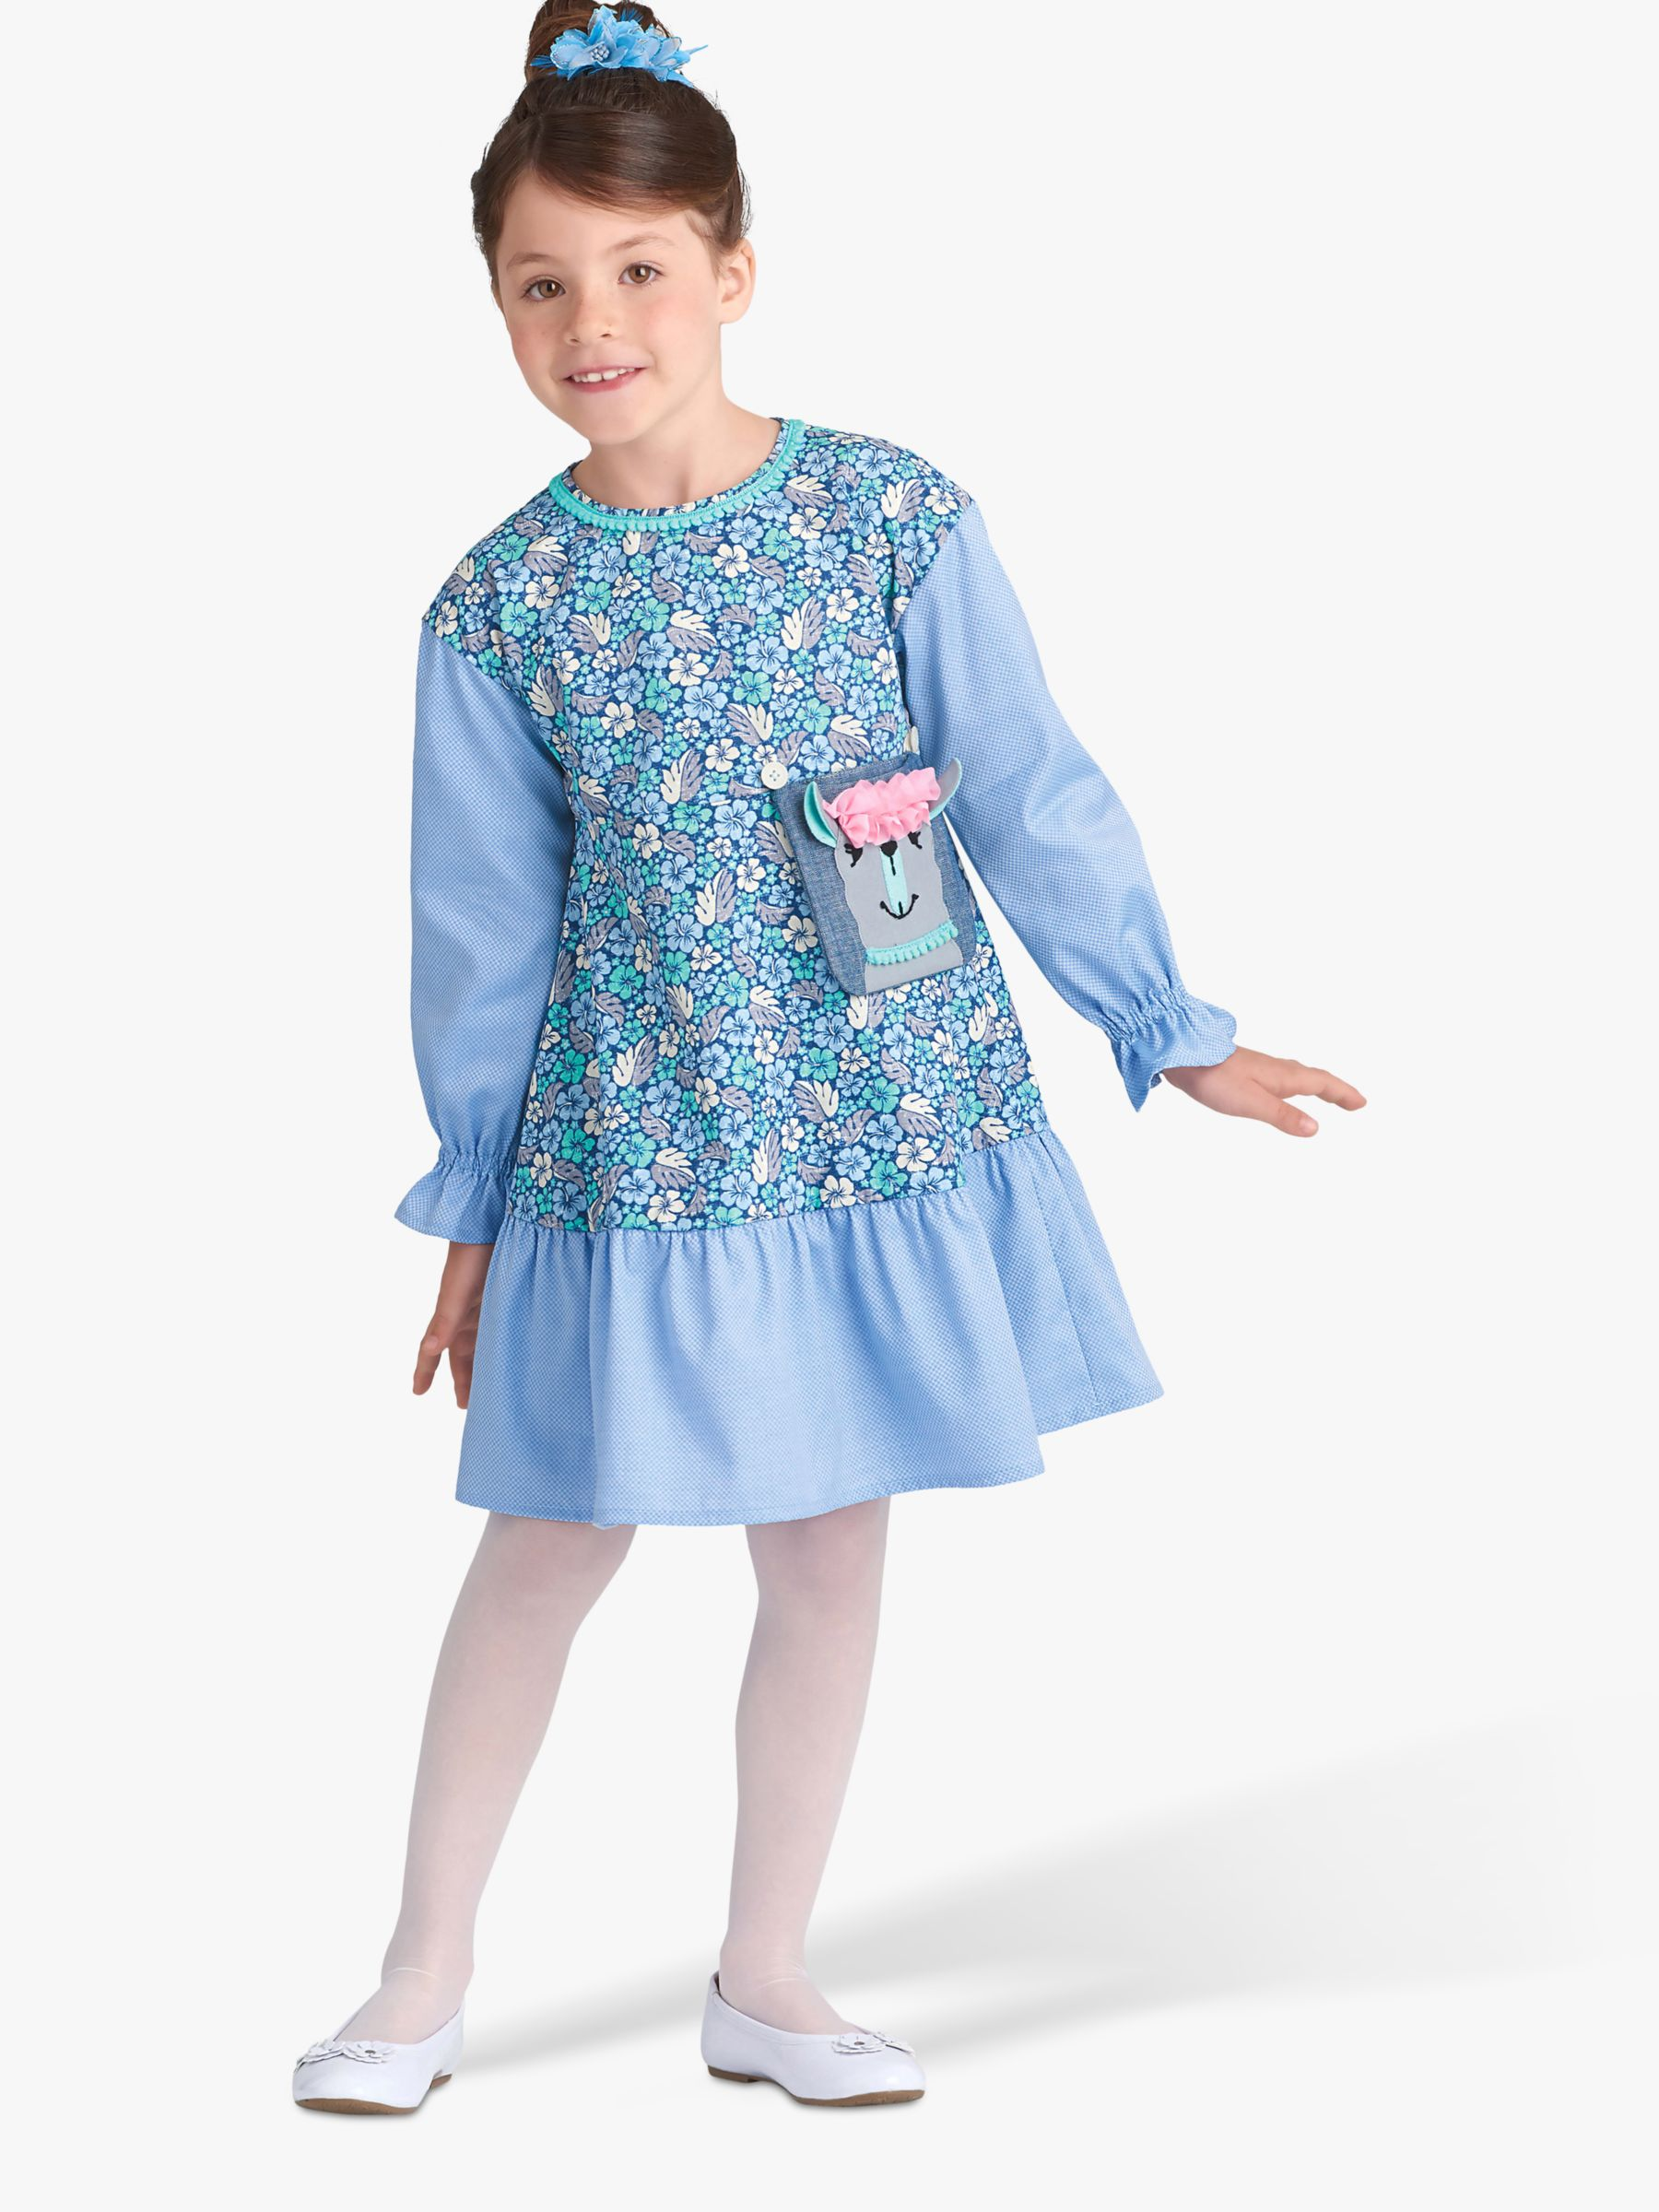 Simplicity Simplicity Children's Dress Sewing Pattern, 9024, A